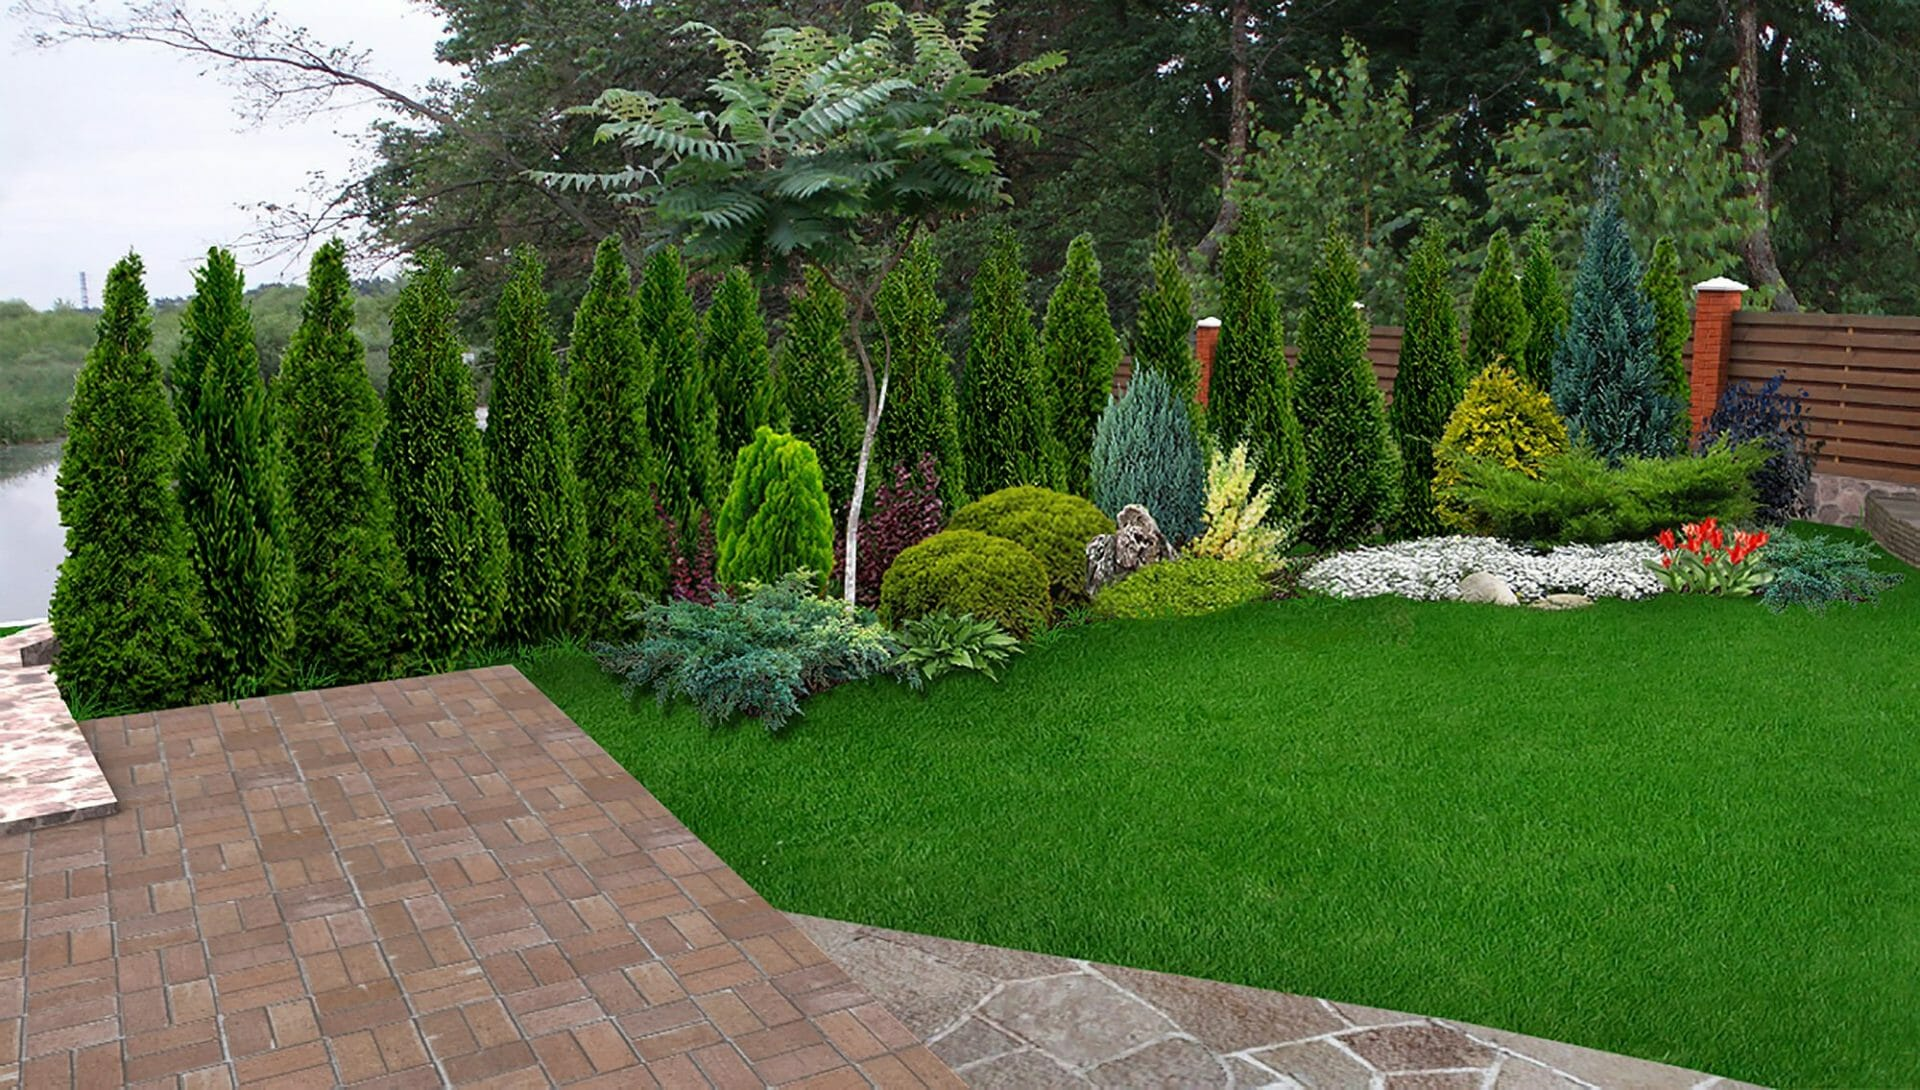 Creating Privacy with Landscaping - Taylor Anthony 365